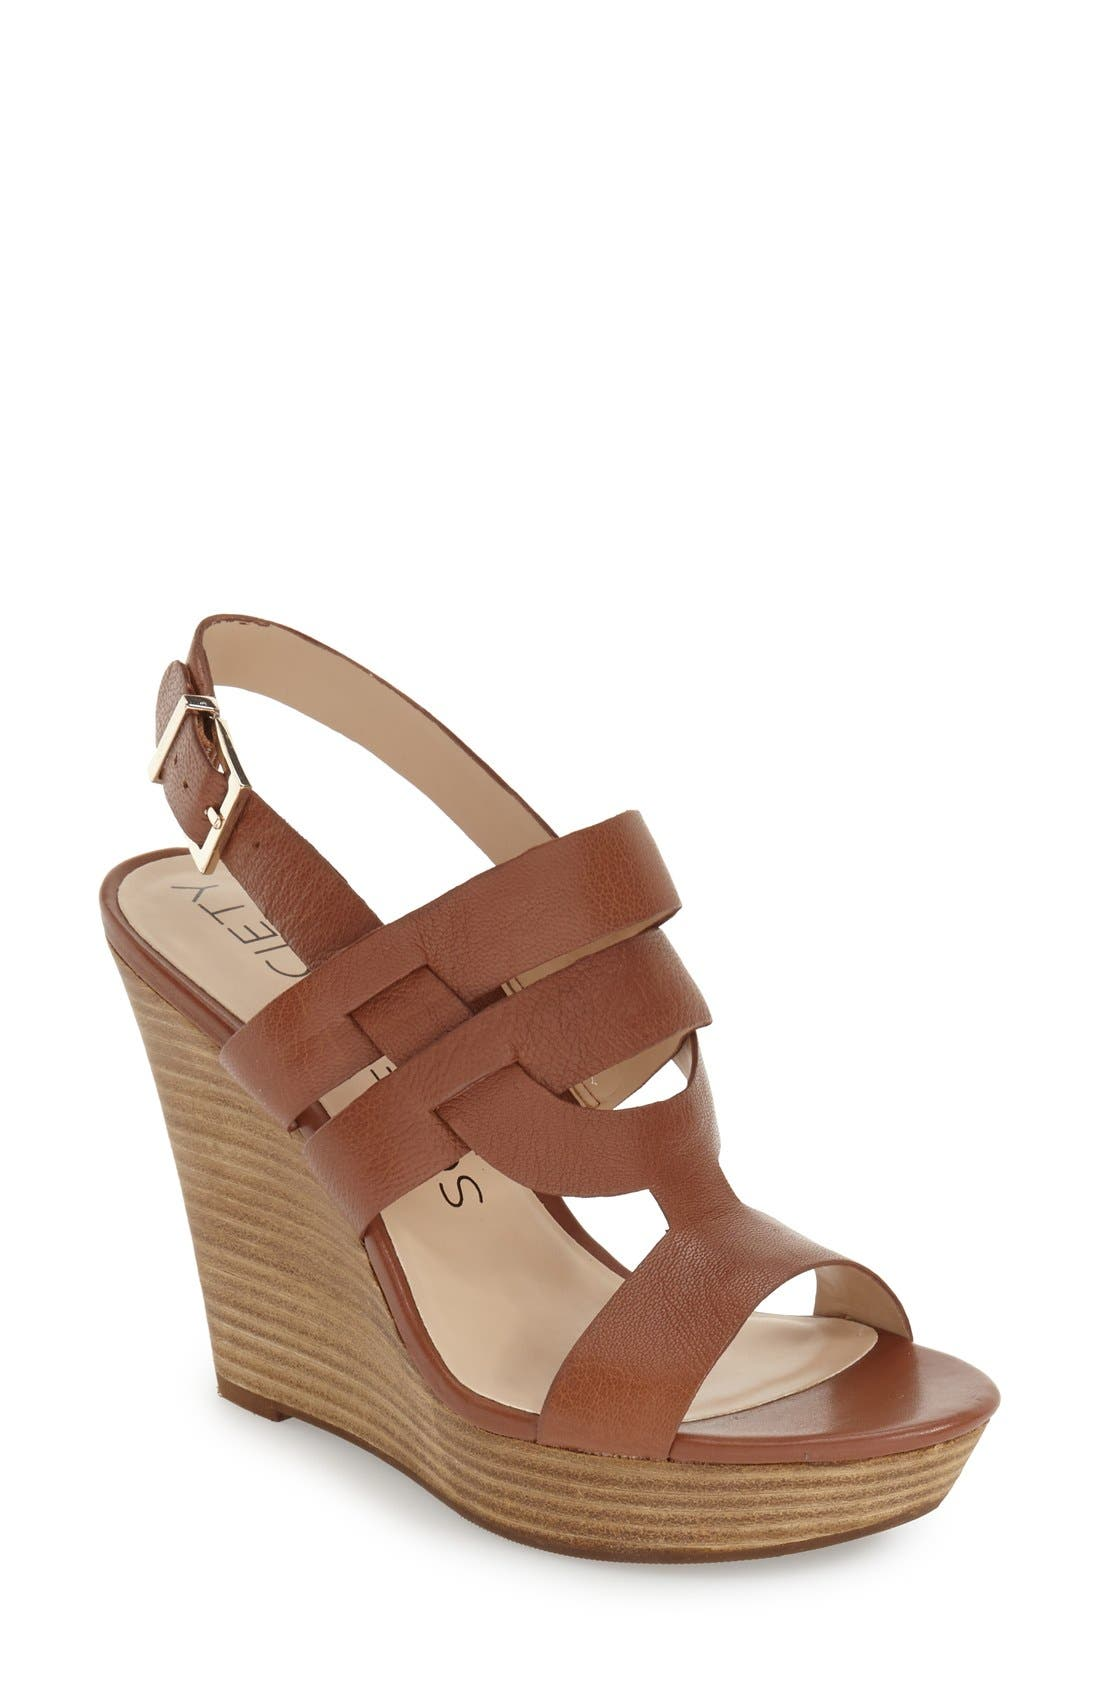 'Jenny' Slingback Wedge Sandal,                         Main,                         color, Equestrian Tan